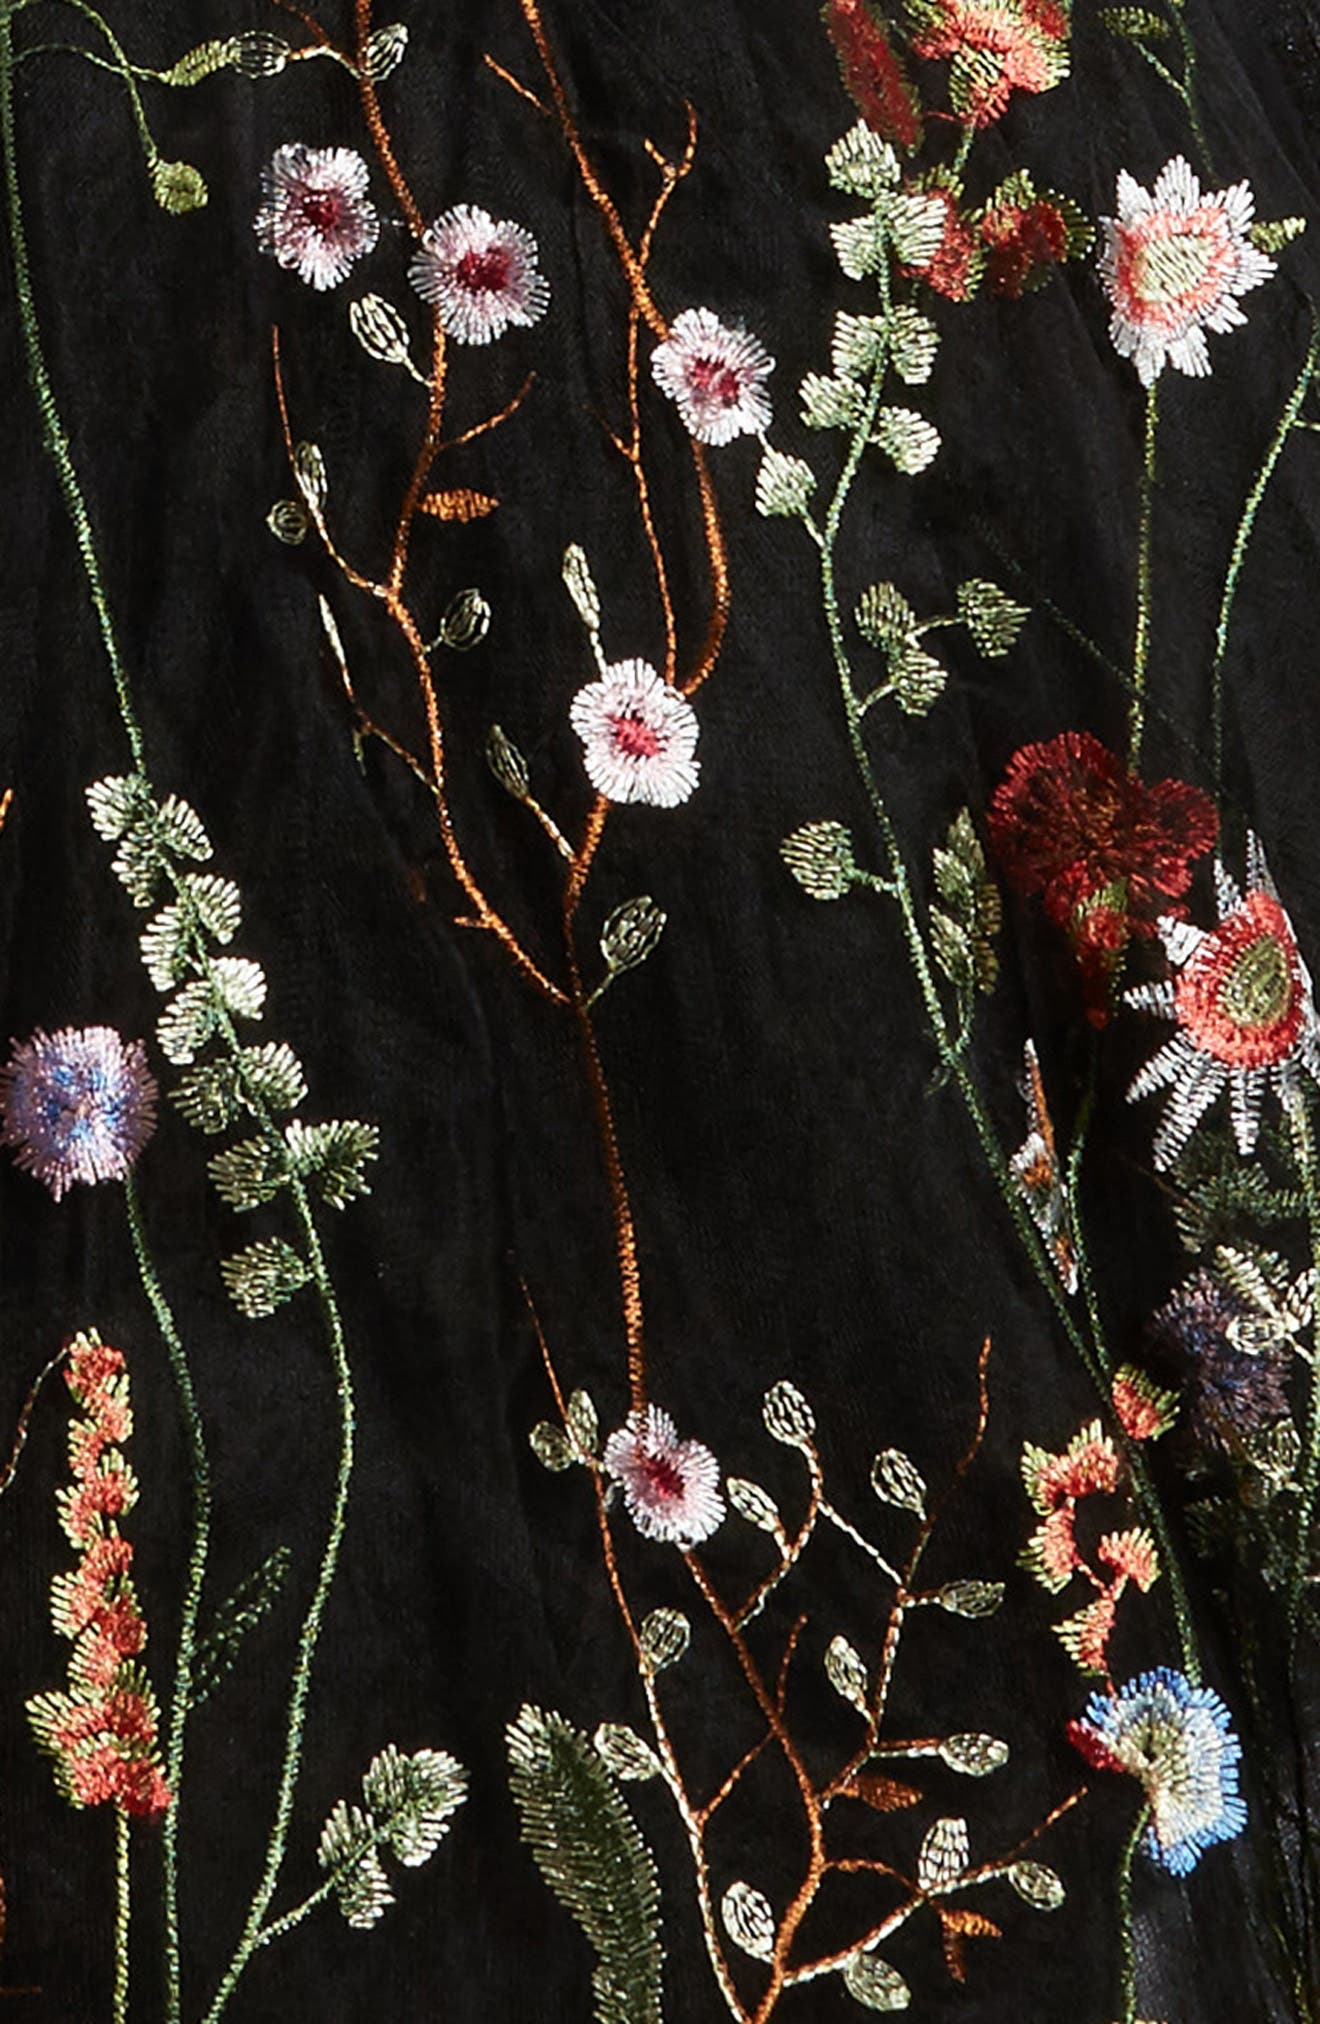 Charisse Embroidered Floral Dress,                             Alternate thumbnail 3, color,                             001